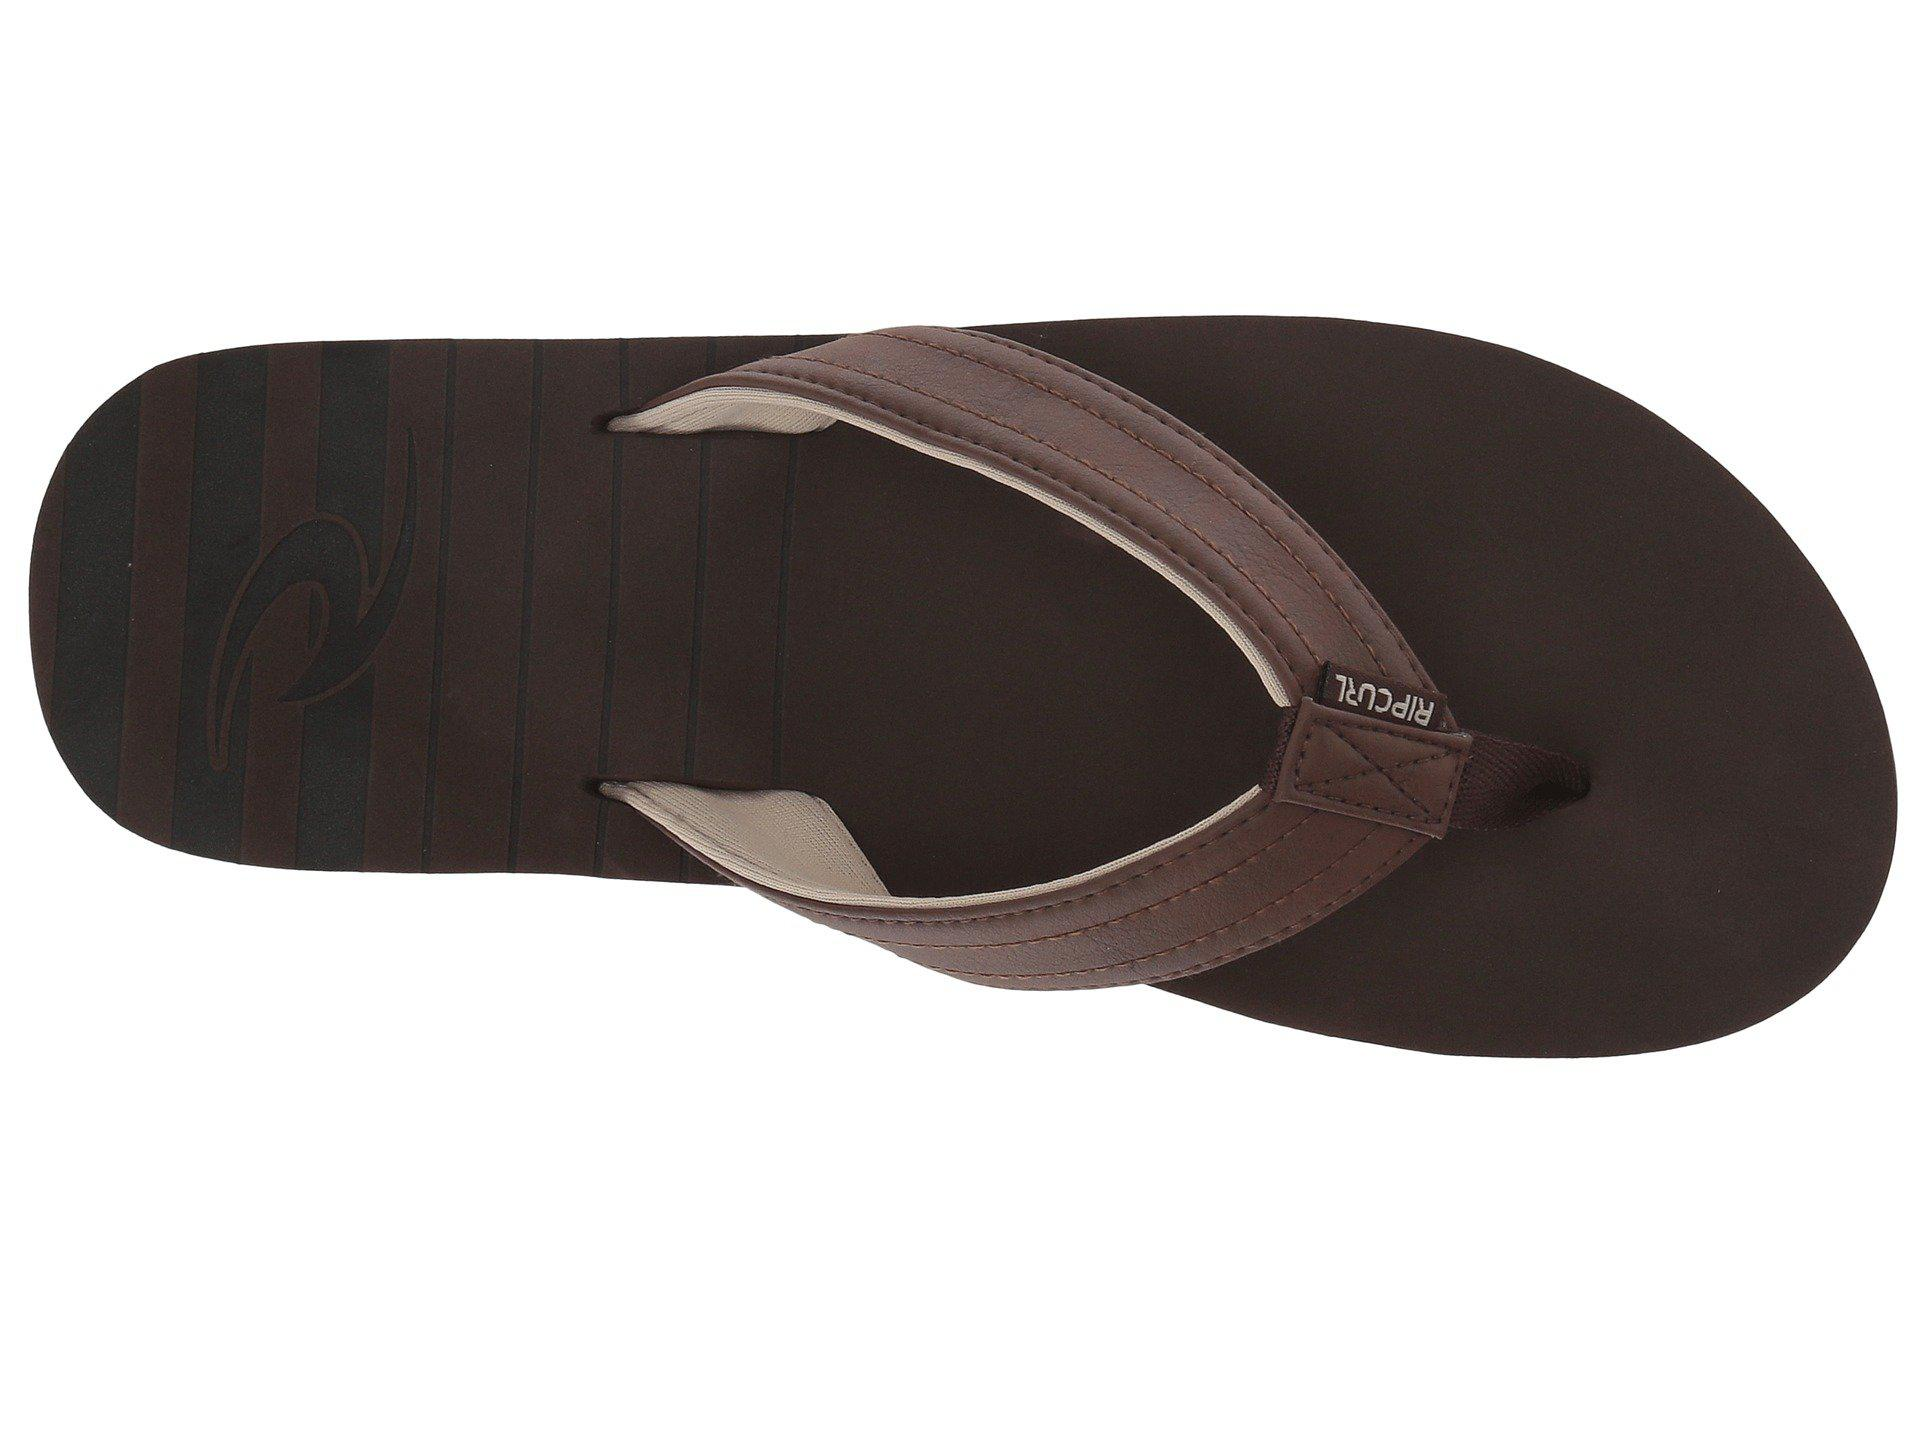 5a2a62d90c7f6a Rip Curl - Brown The Groove (chocolate) Men s Sandals for Men - Lyst. View  fullscreen